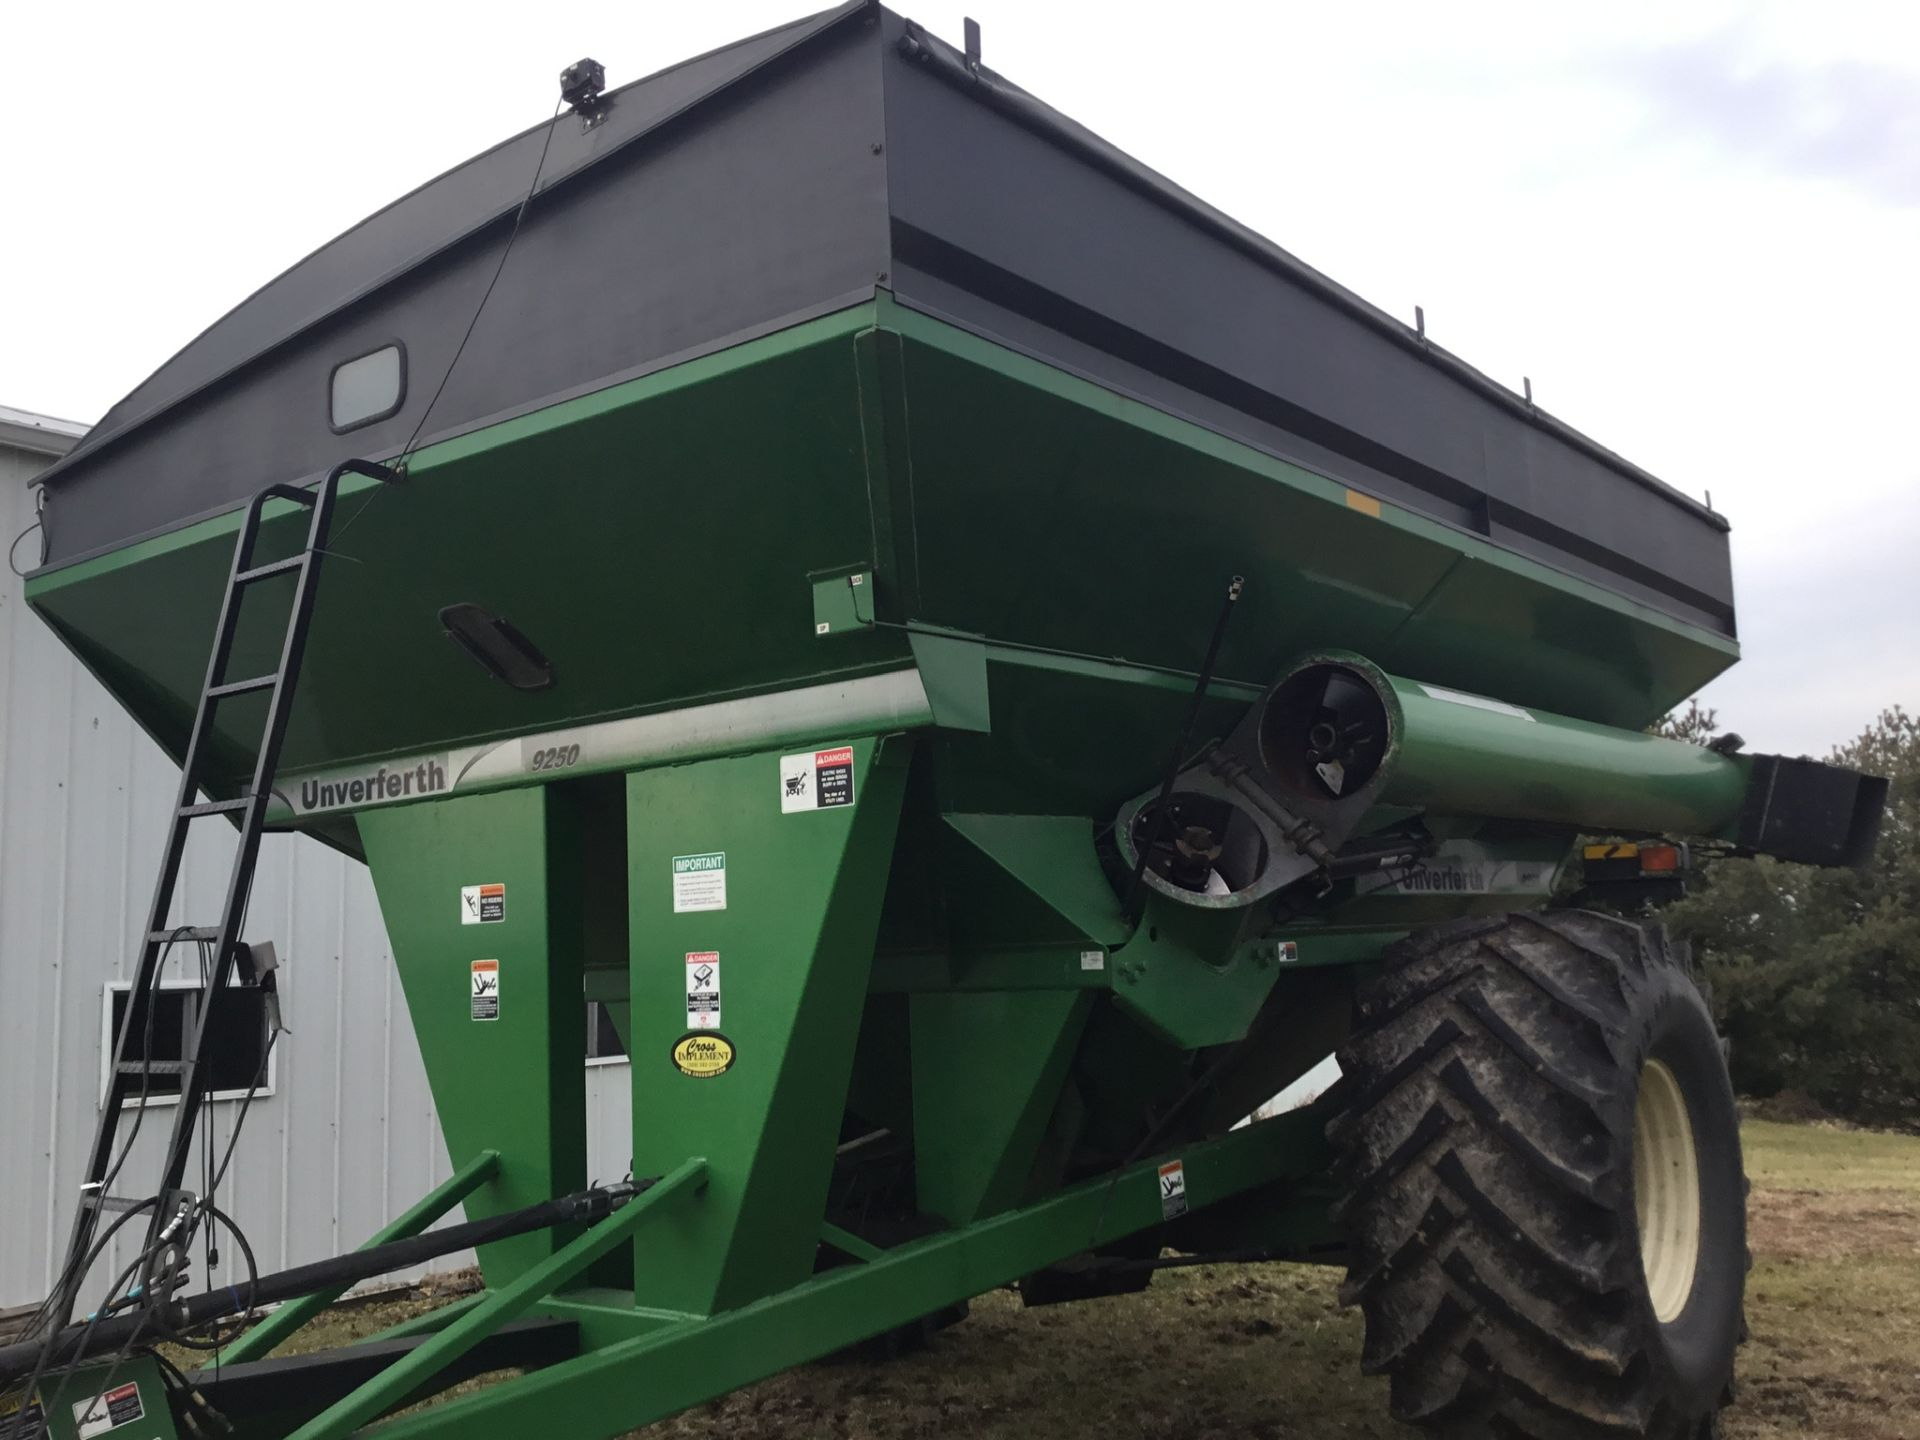 2009 Unverferth 9250 1,000 Bu. Auger Cart, Hydraulic Spout, 3 Cameras, Roll Tarp, New Augers, 900- - Image 15 of 15